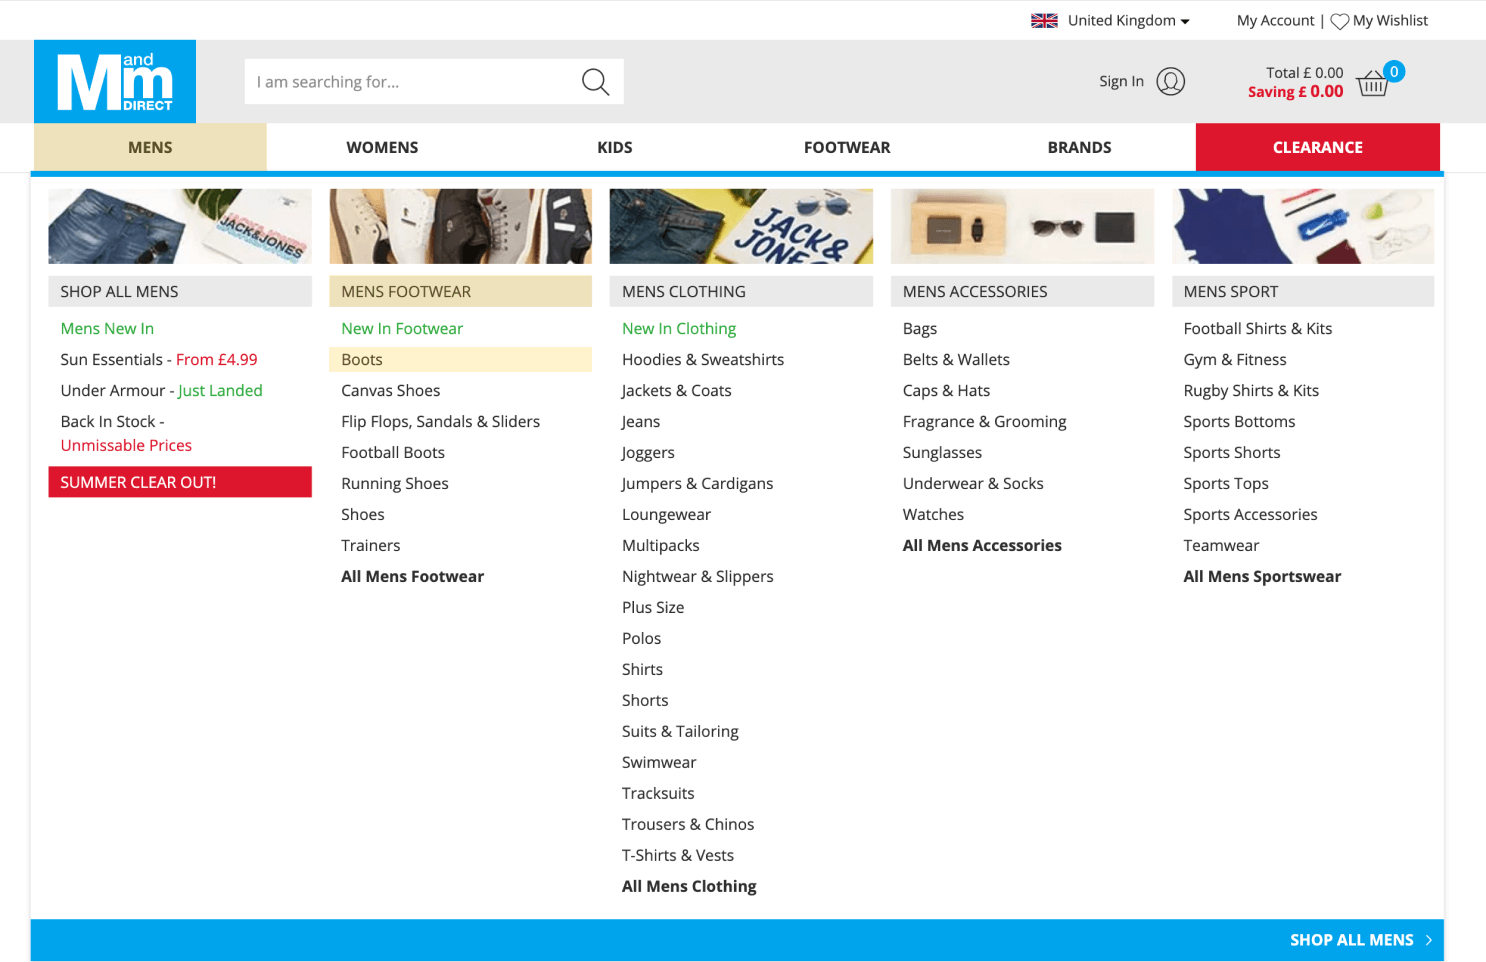 MandM Direct menu with product categories highlighted.